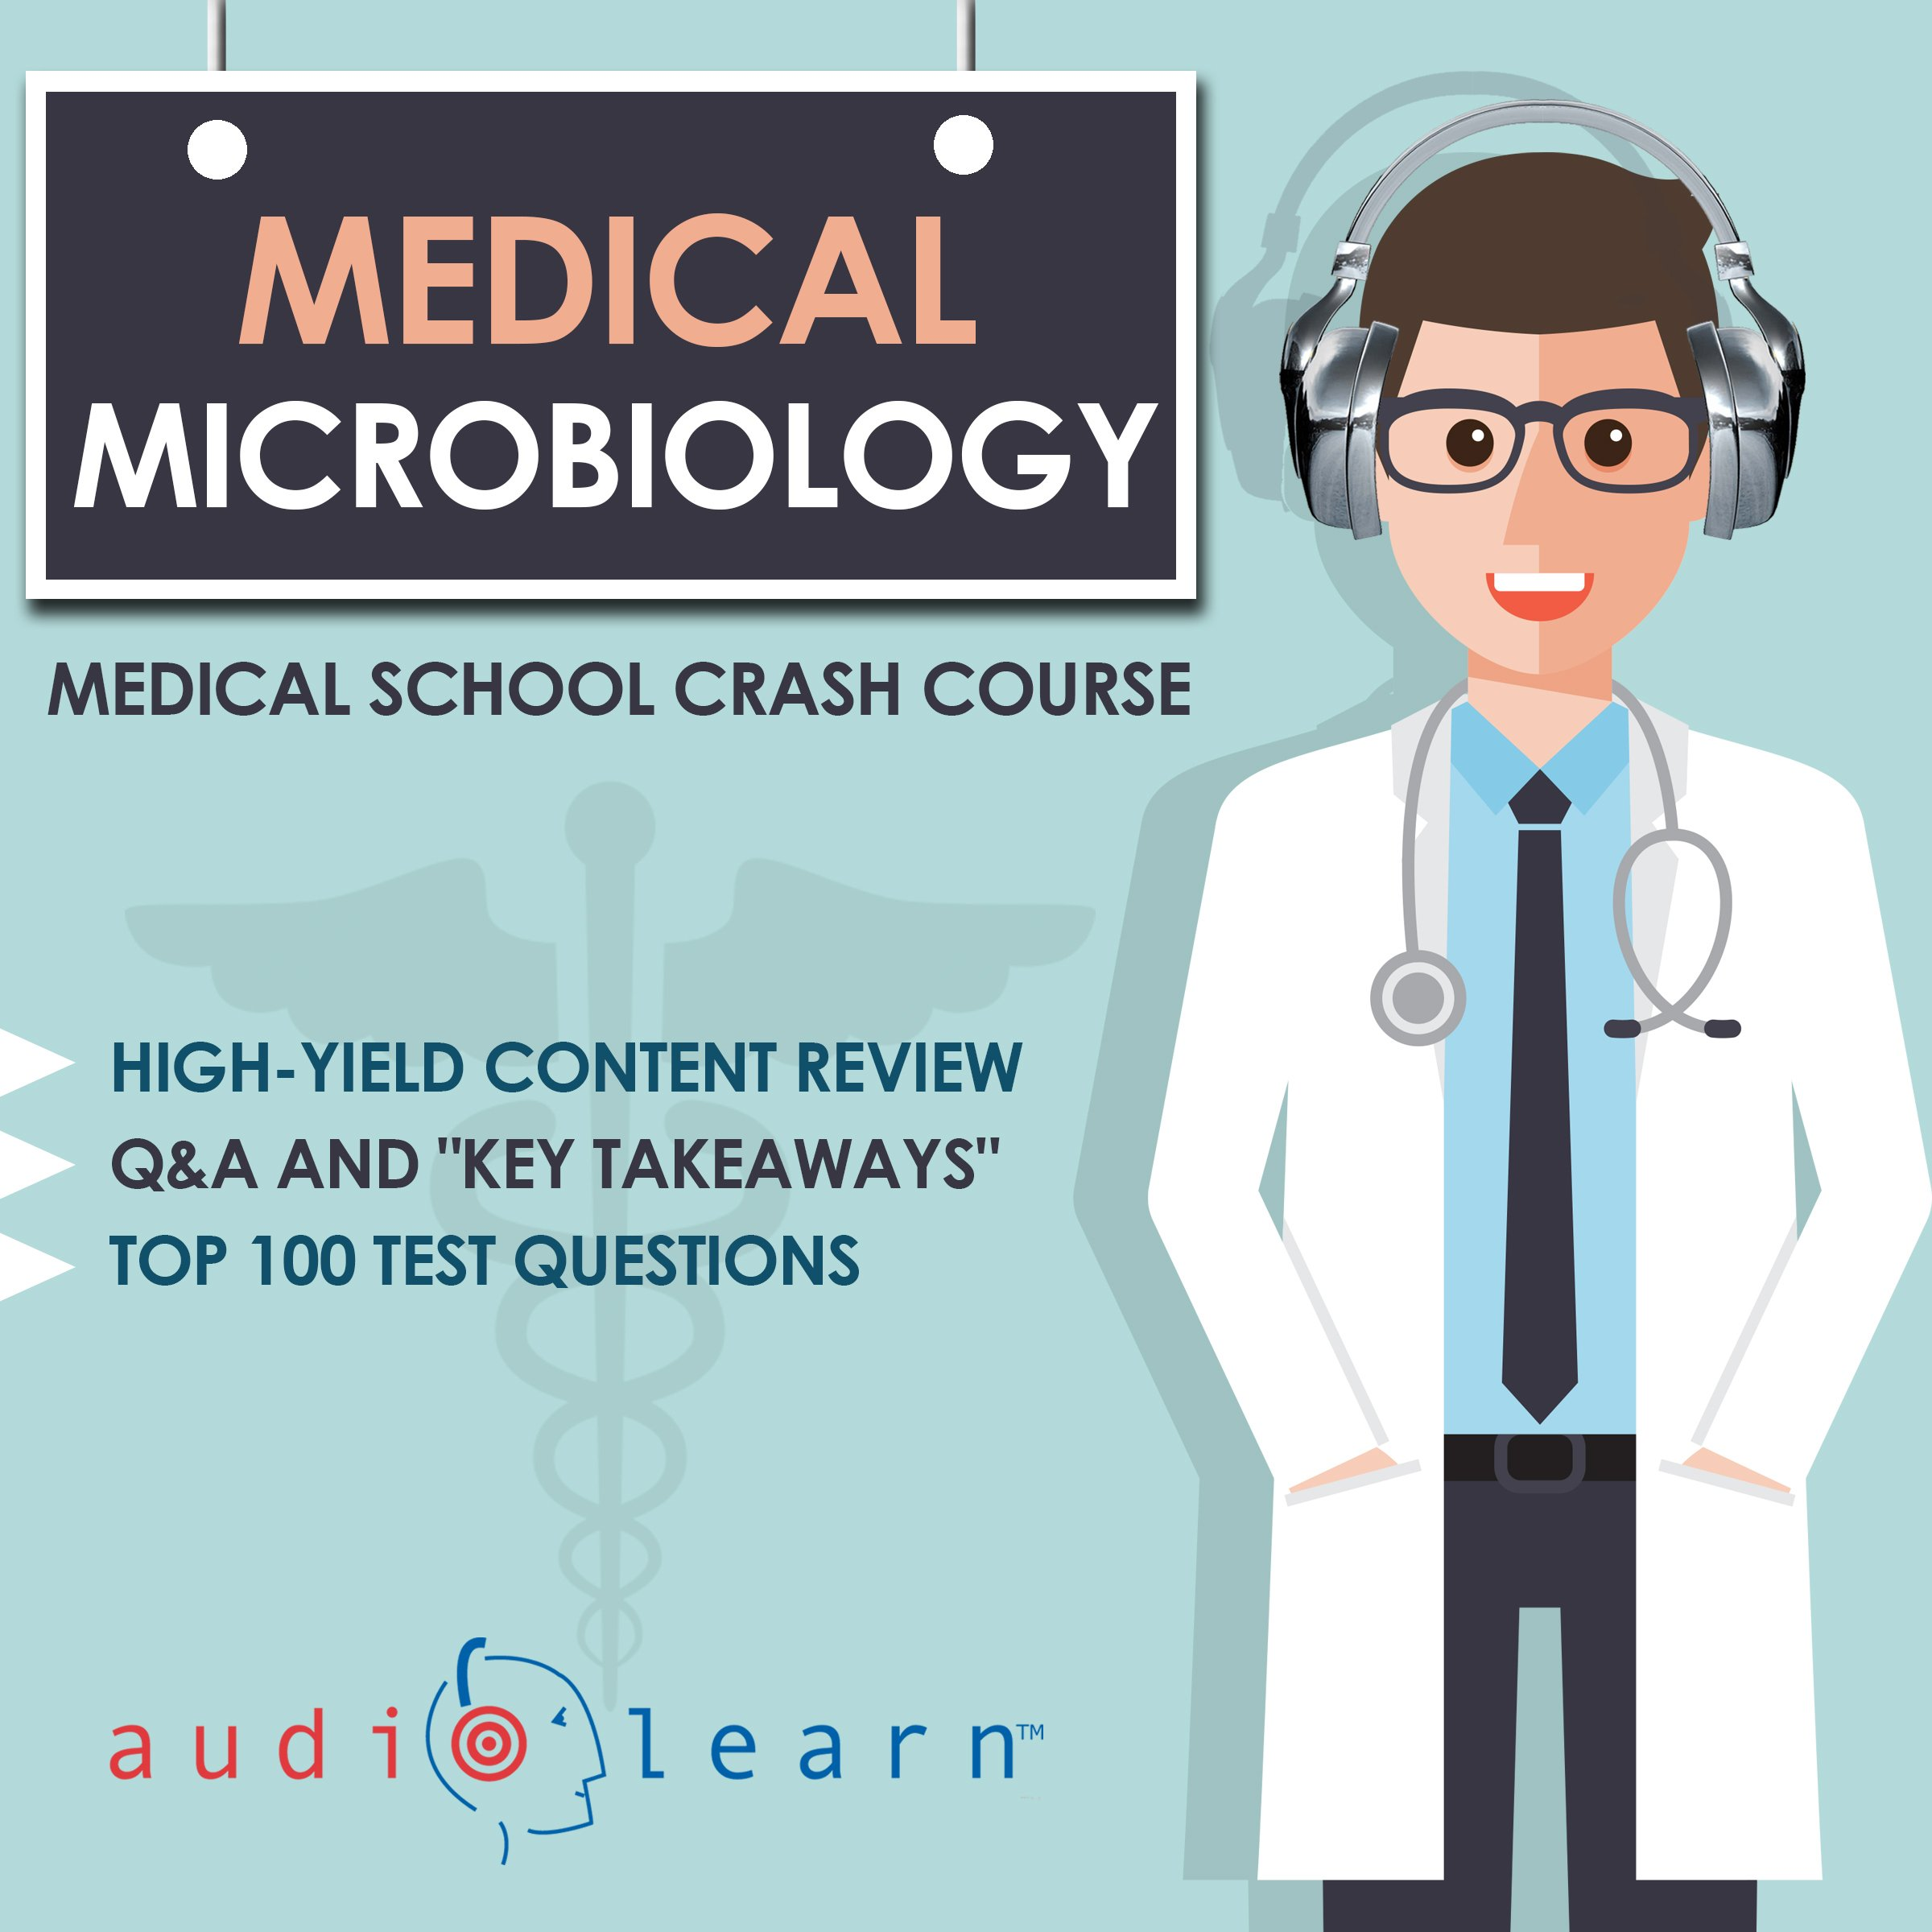 Medical Microbiology: Medical School Crash Course